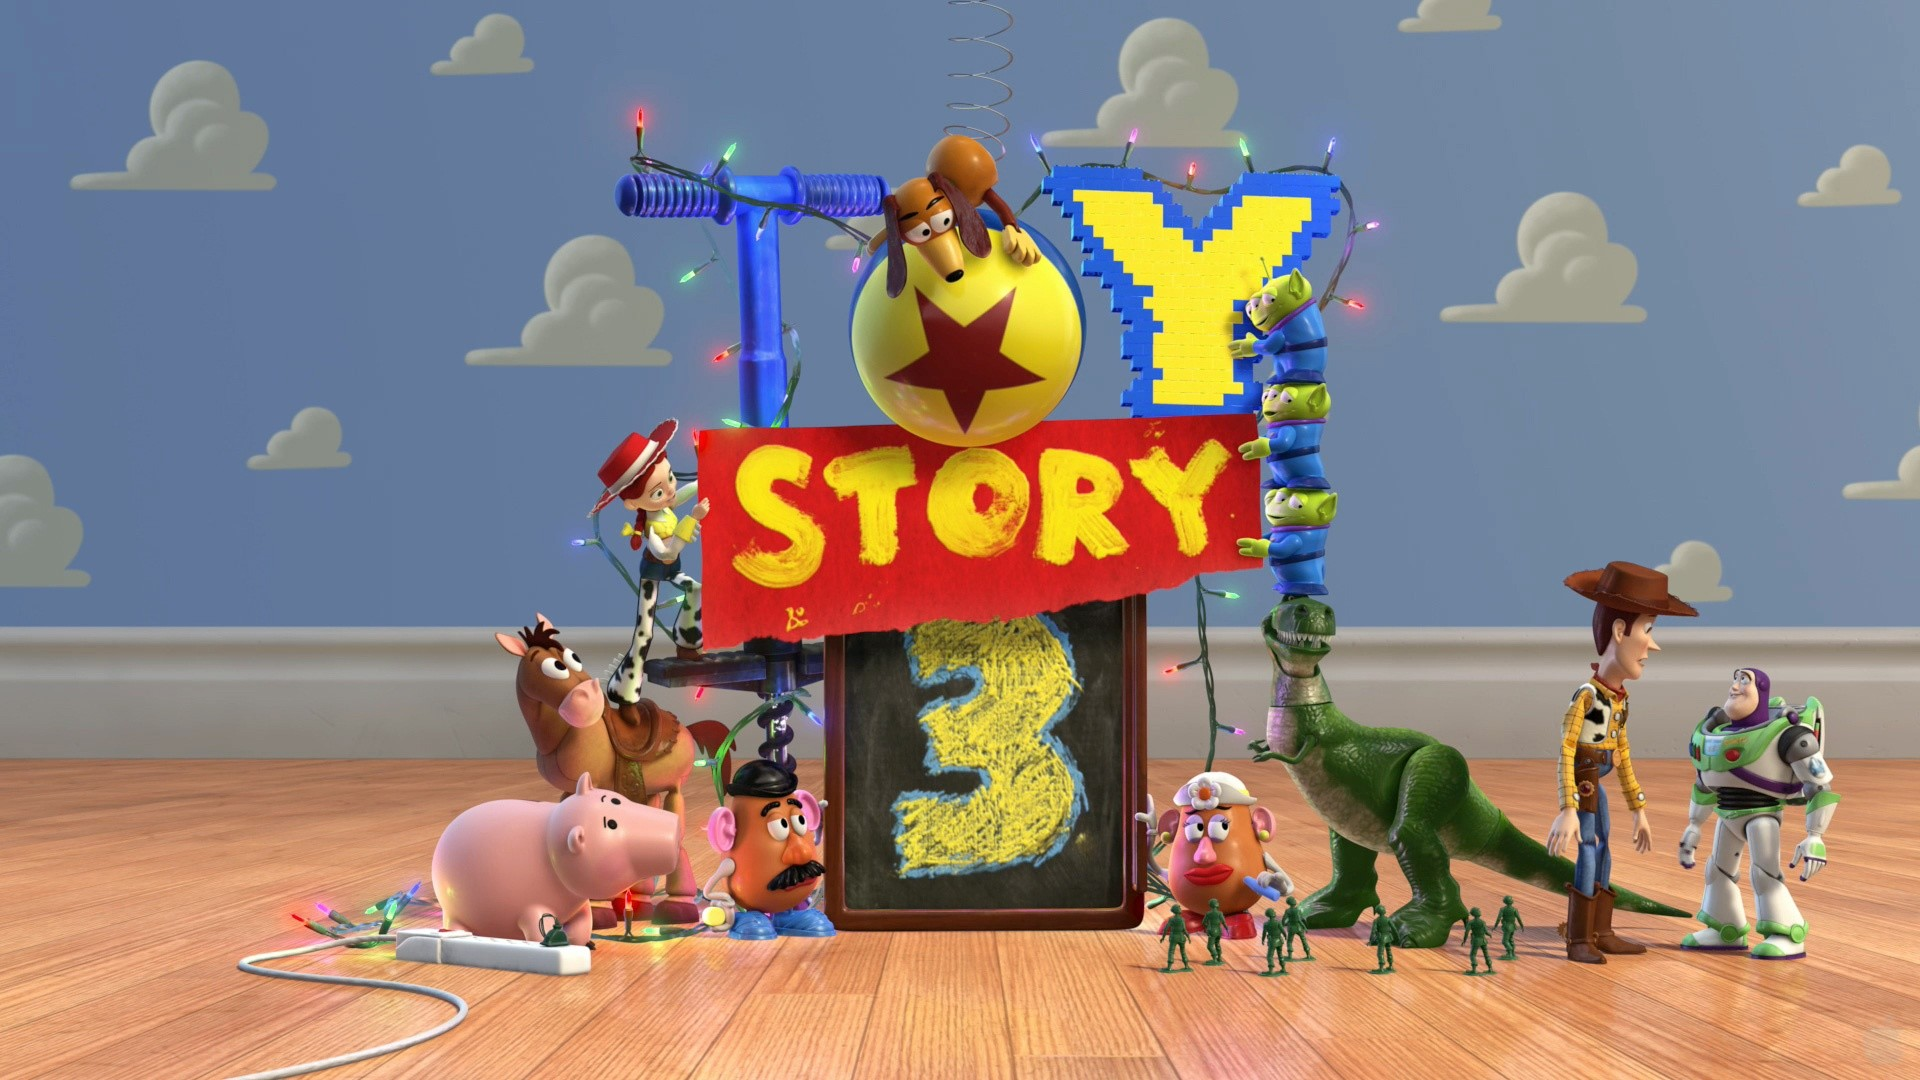 Toy story 1 2 3 wallpapers hd backgrounds